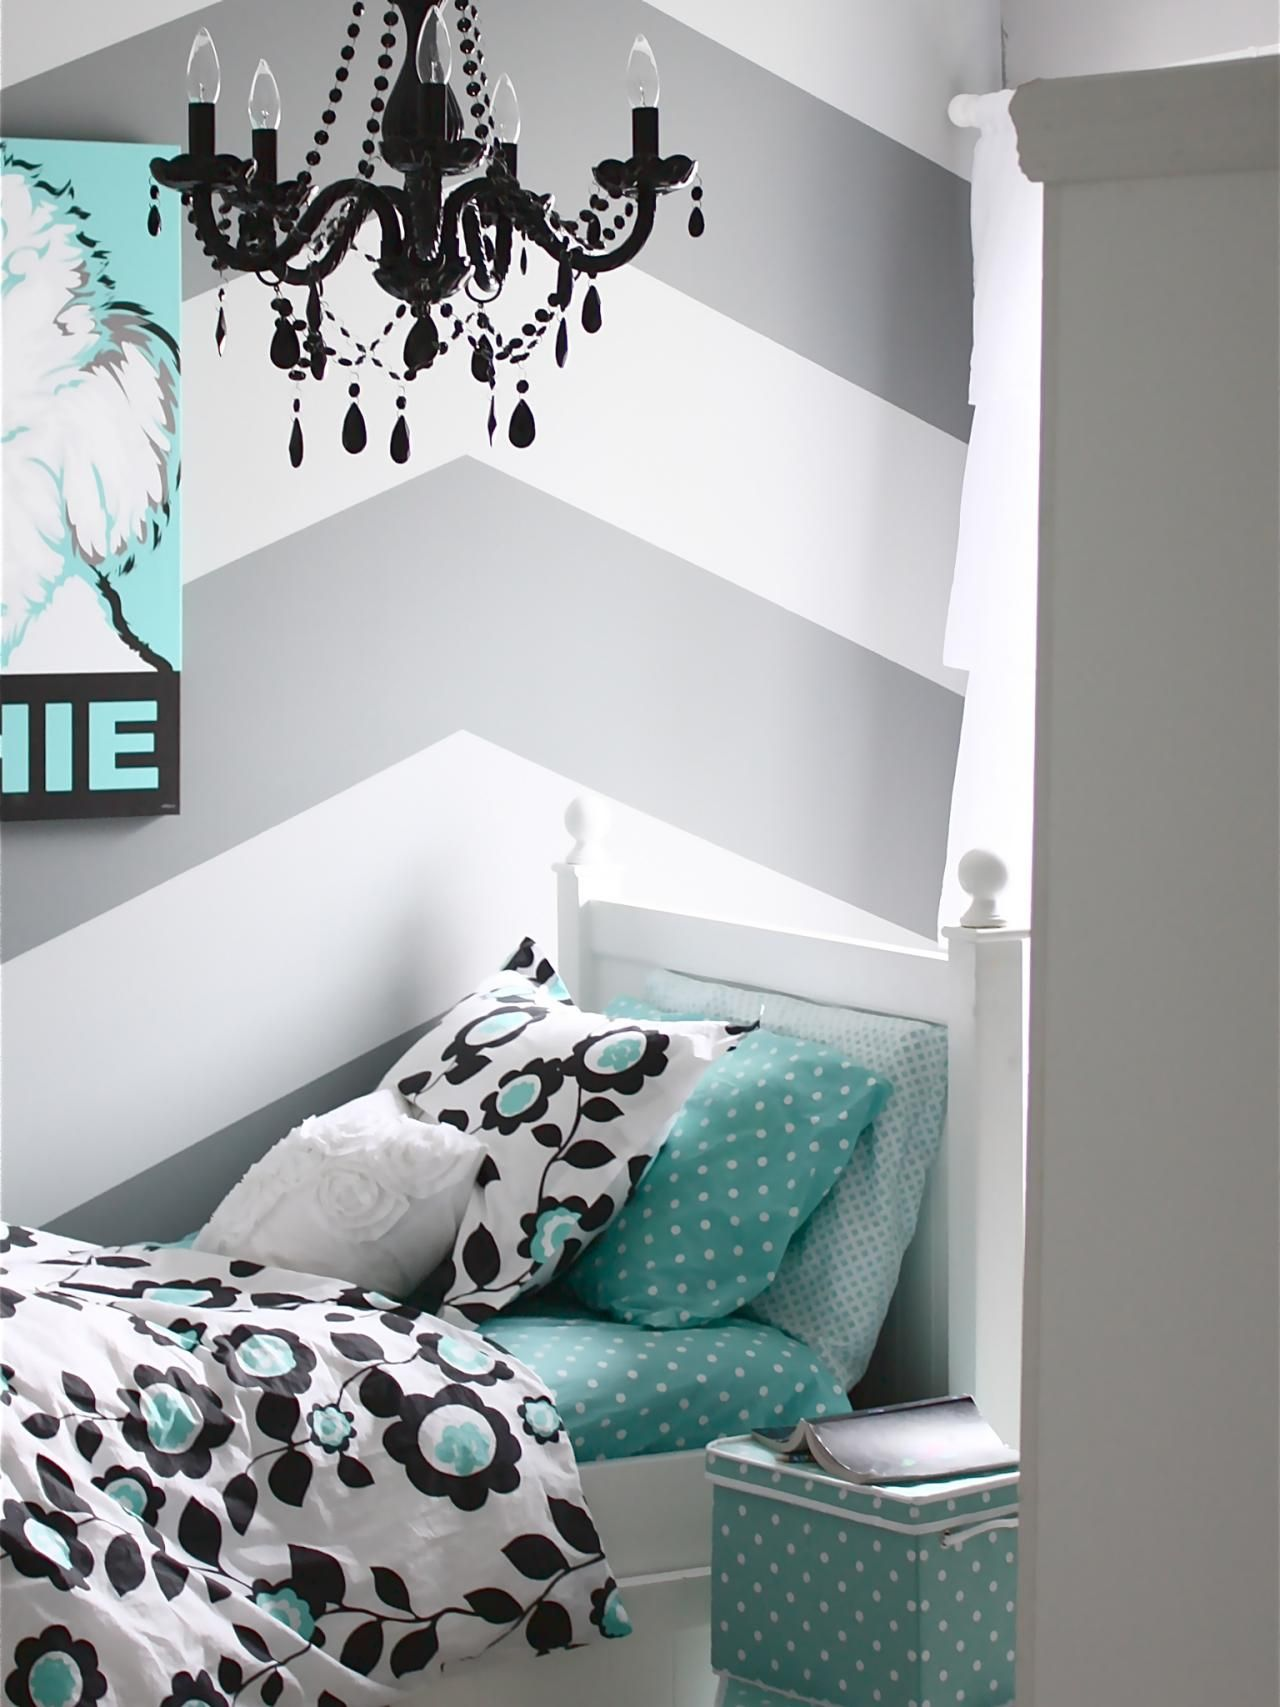 Using a black glass chandelier instead of a more traditional style adds funkiness to this hip tween's room. Silver, aqua and white accents balance out the heaviness of the black. Design by Sarah Macklem